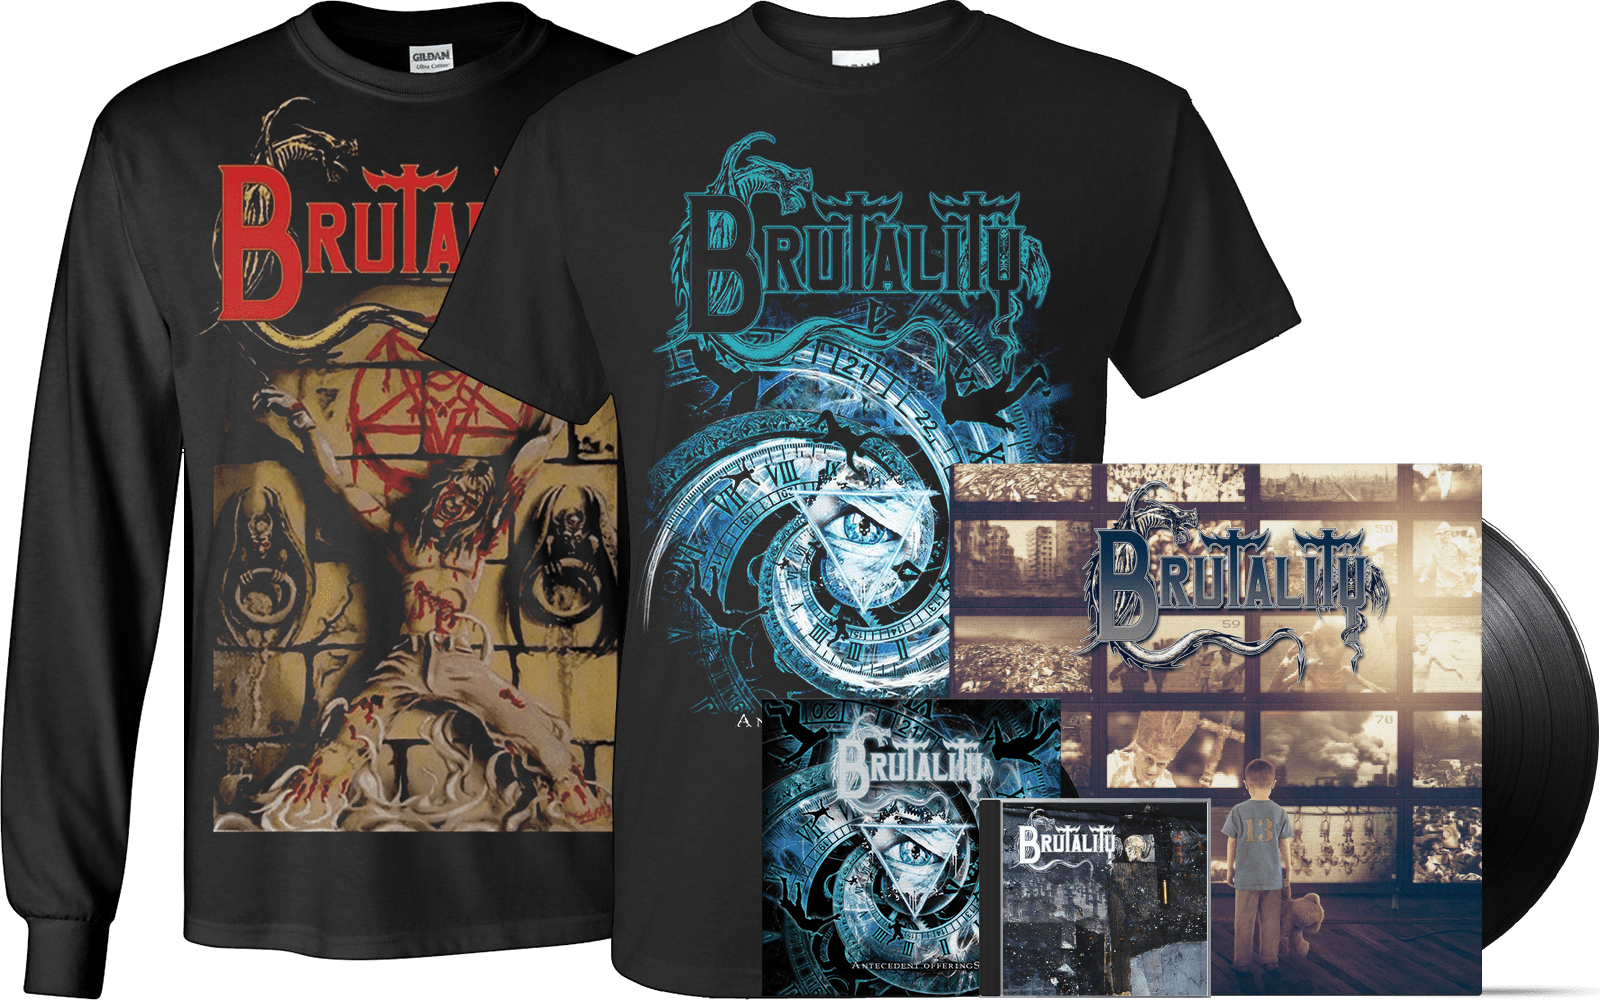 Brutality band official merchandise